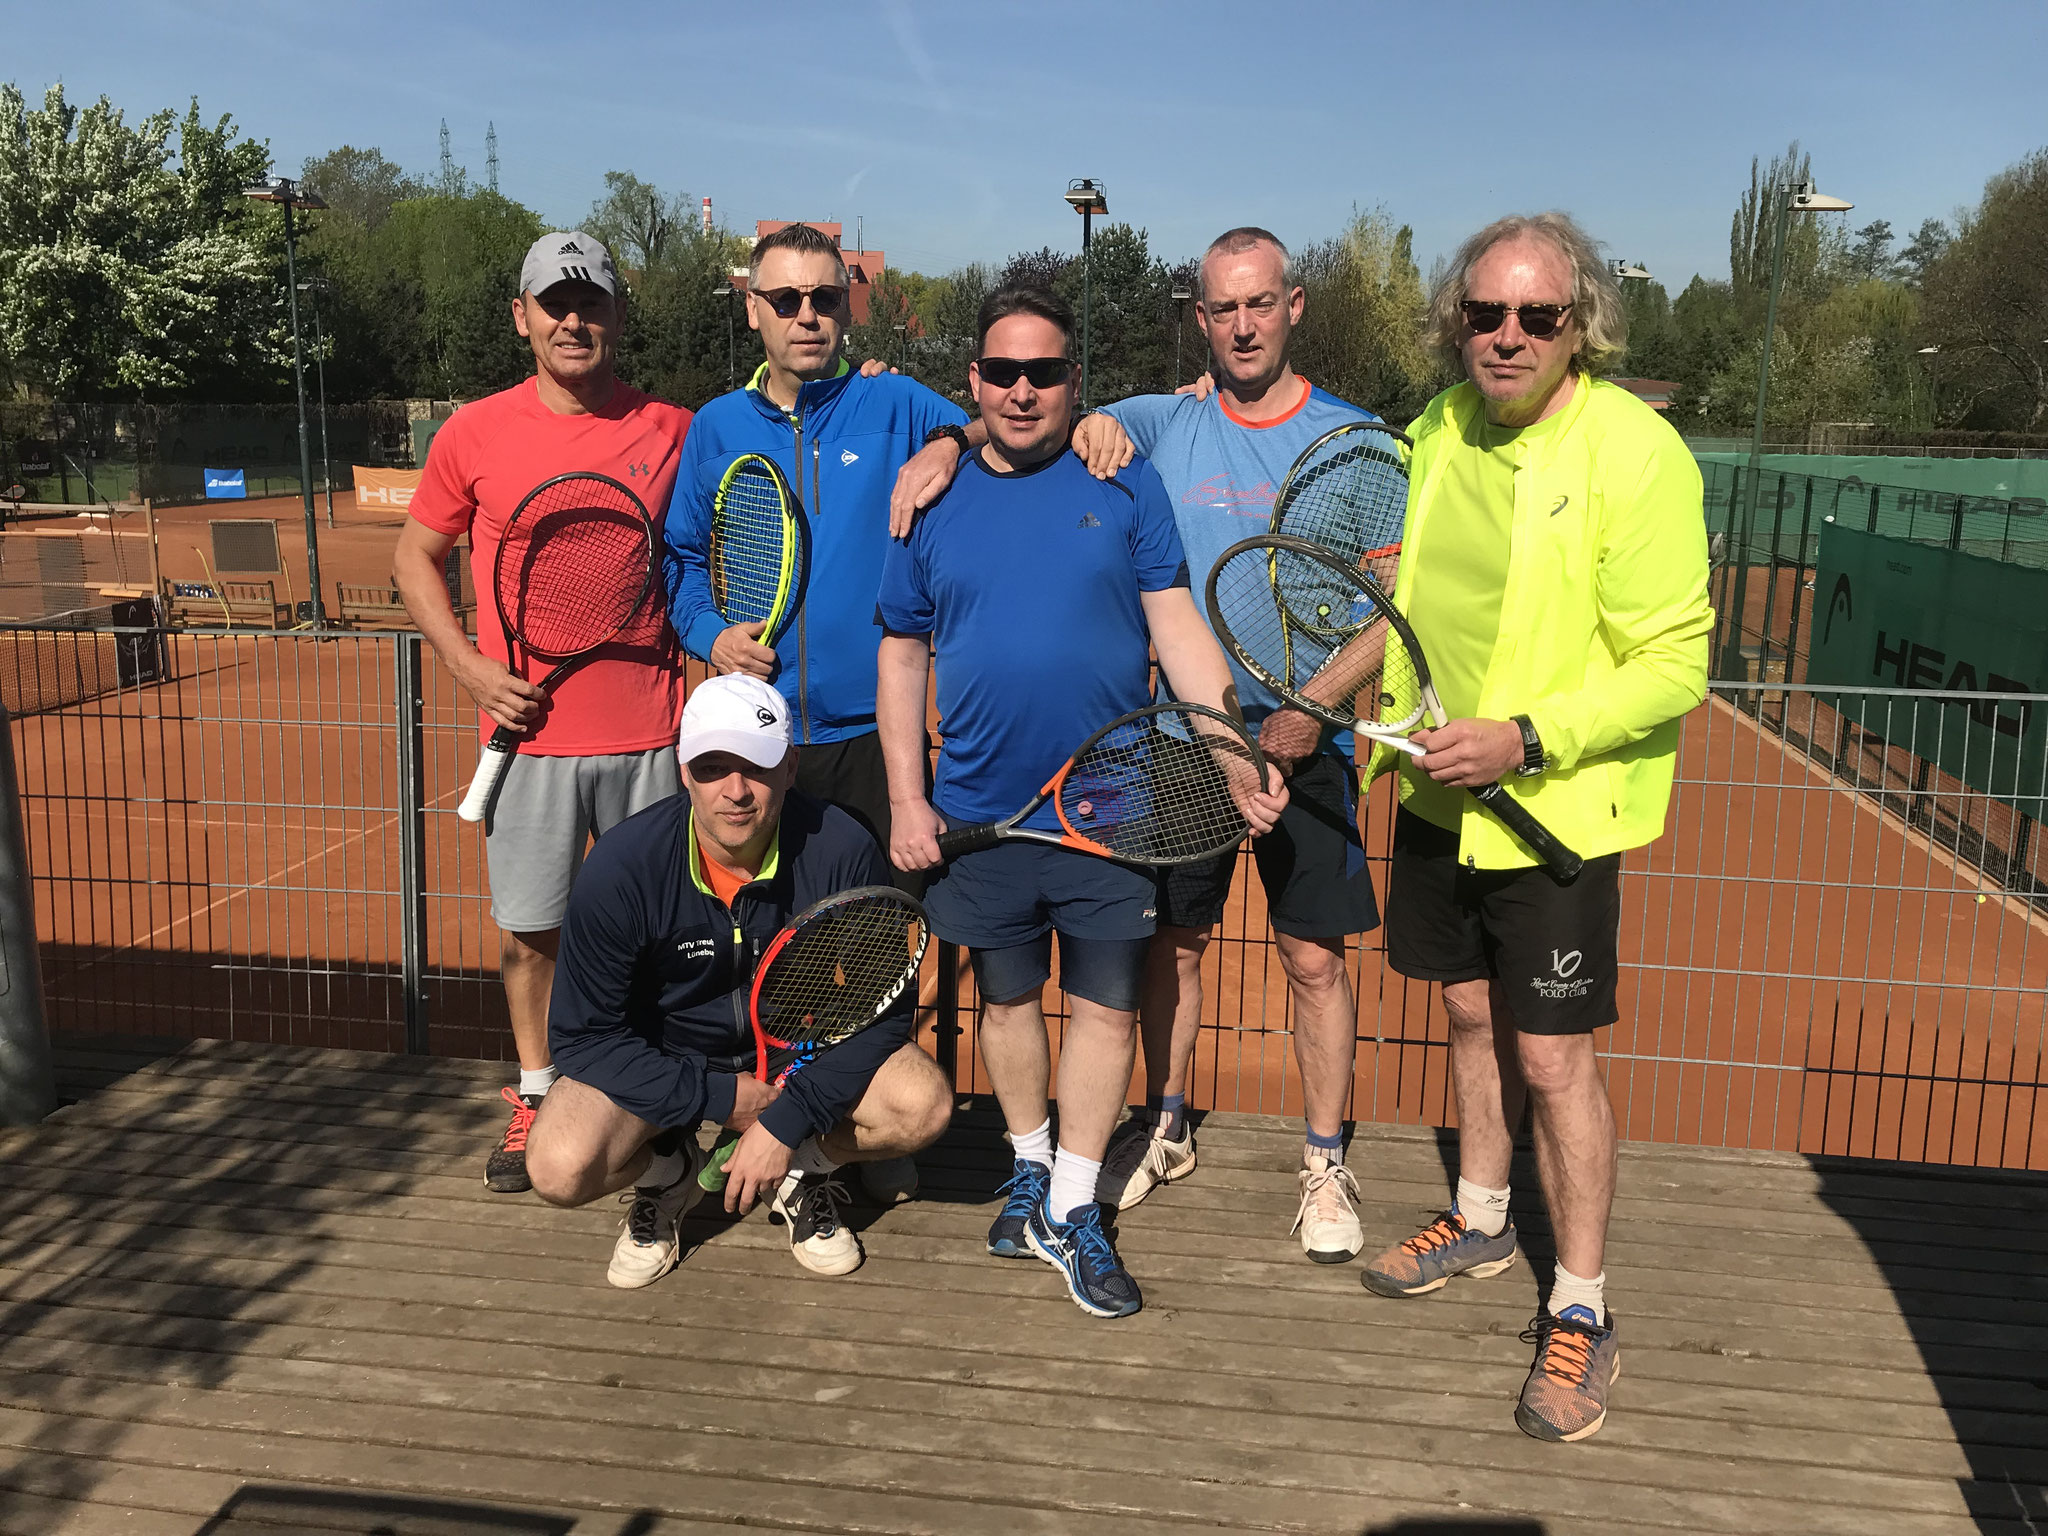 Tenniscamp im Prag  Mai 2018